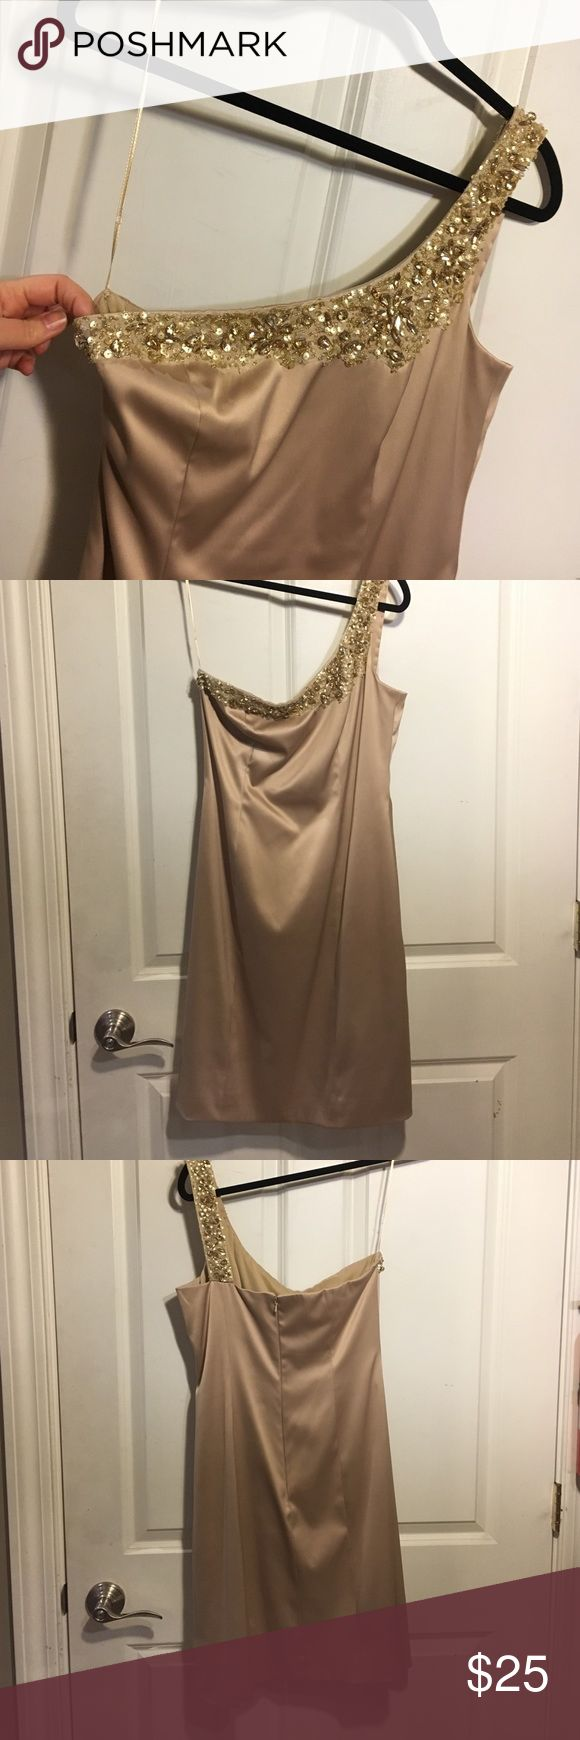 JS Boutique gold sequined one strap dress size 8 JS Boutique gold sequined one strap formal dress size 8. Ribbon to put on hanger is almost loose but can easily be fixed. Bundle and save. Smoke-free home. JS Boutique Dresses Wedding